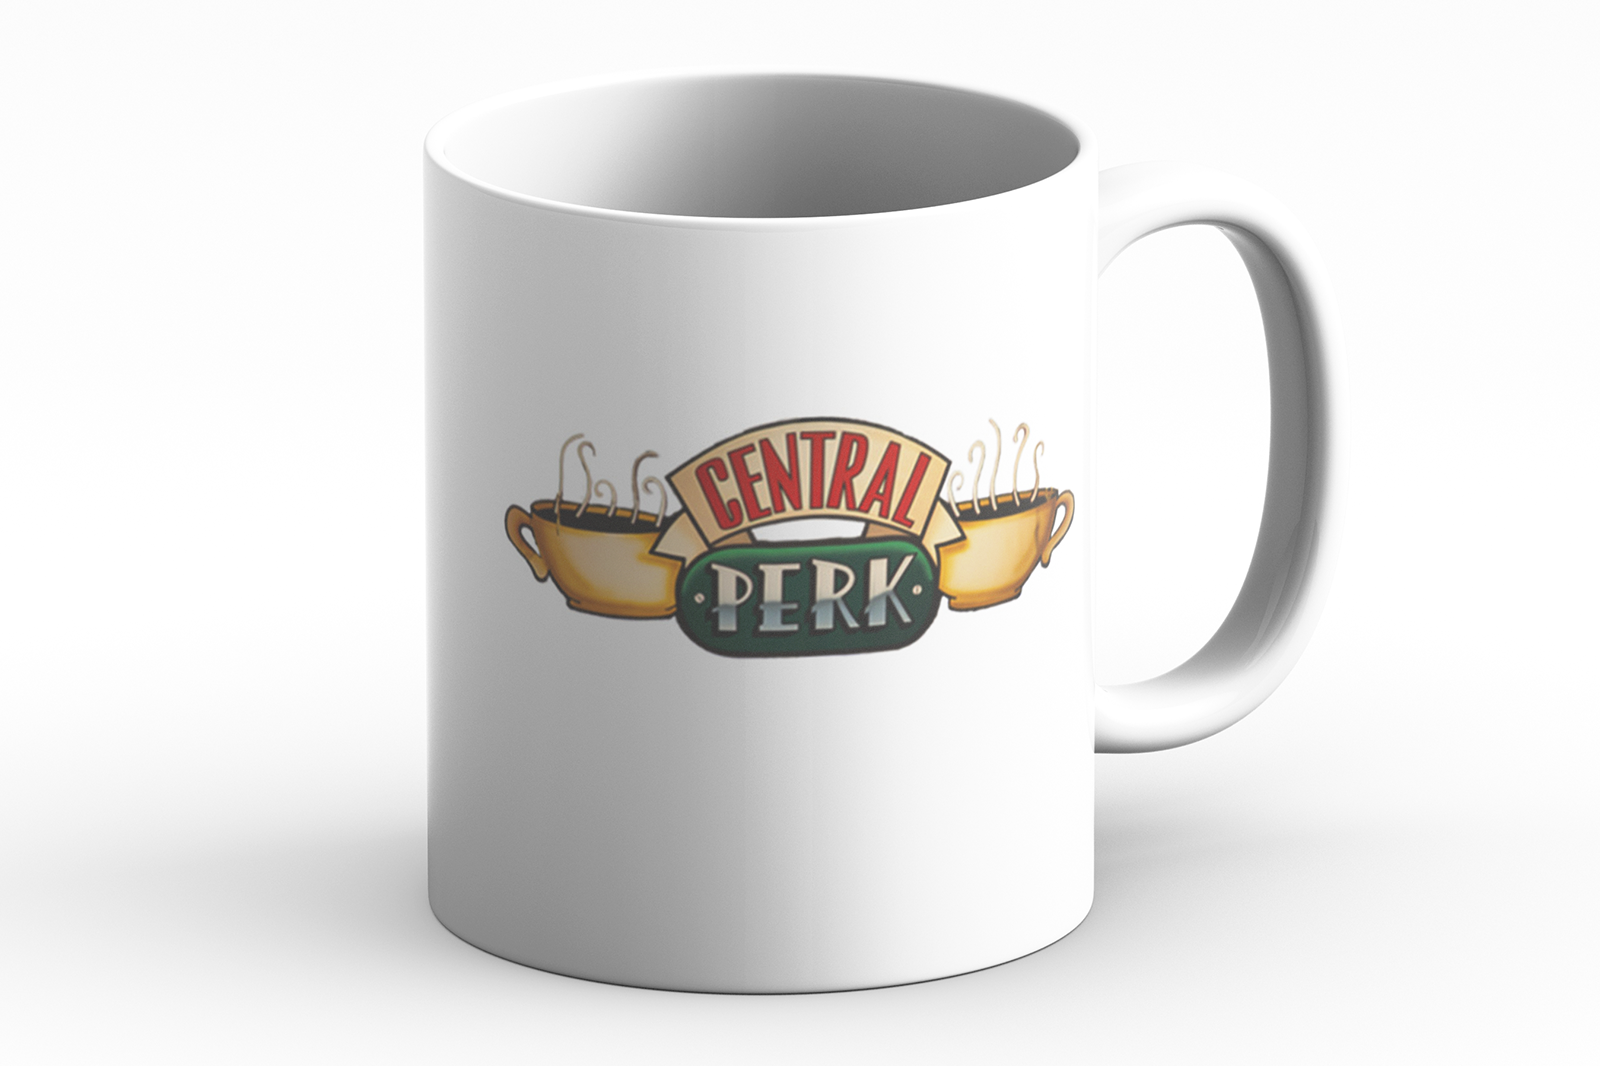 Central Perk Mug From Friends Funny Gift Idea for Christmas